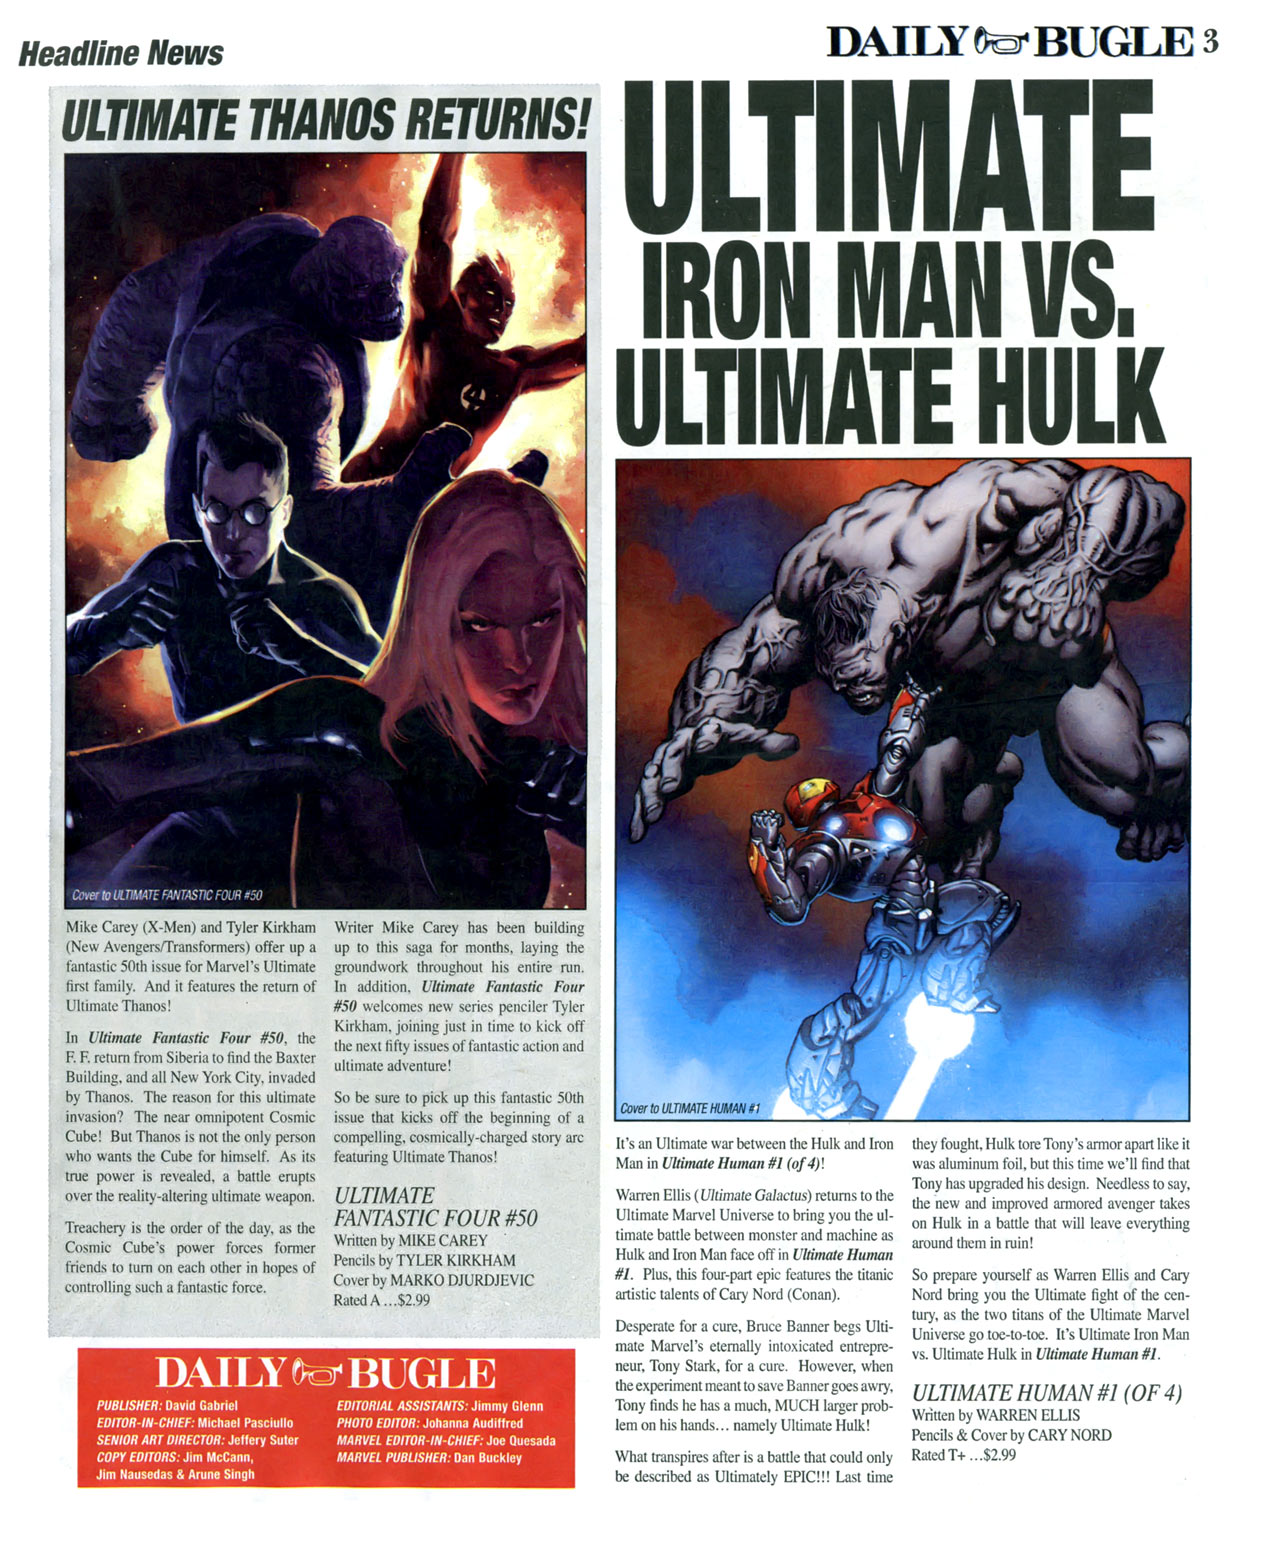 Read online Daily Bugle (2006) comic -  Issue #16 - 4